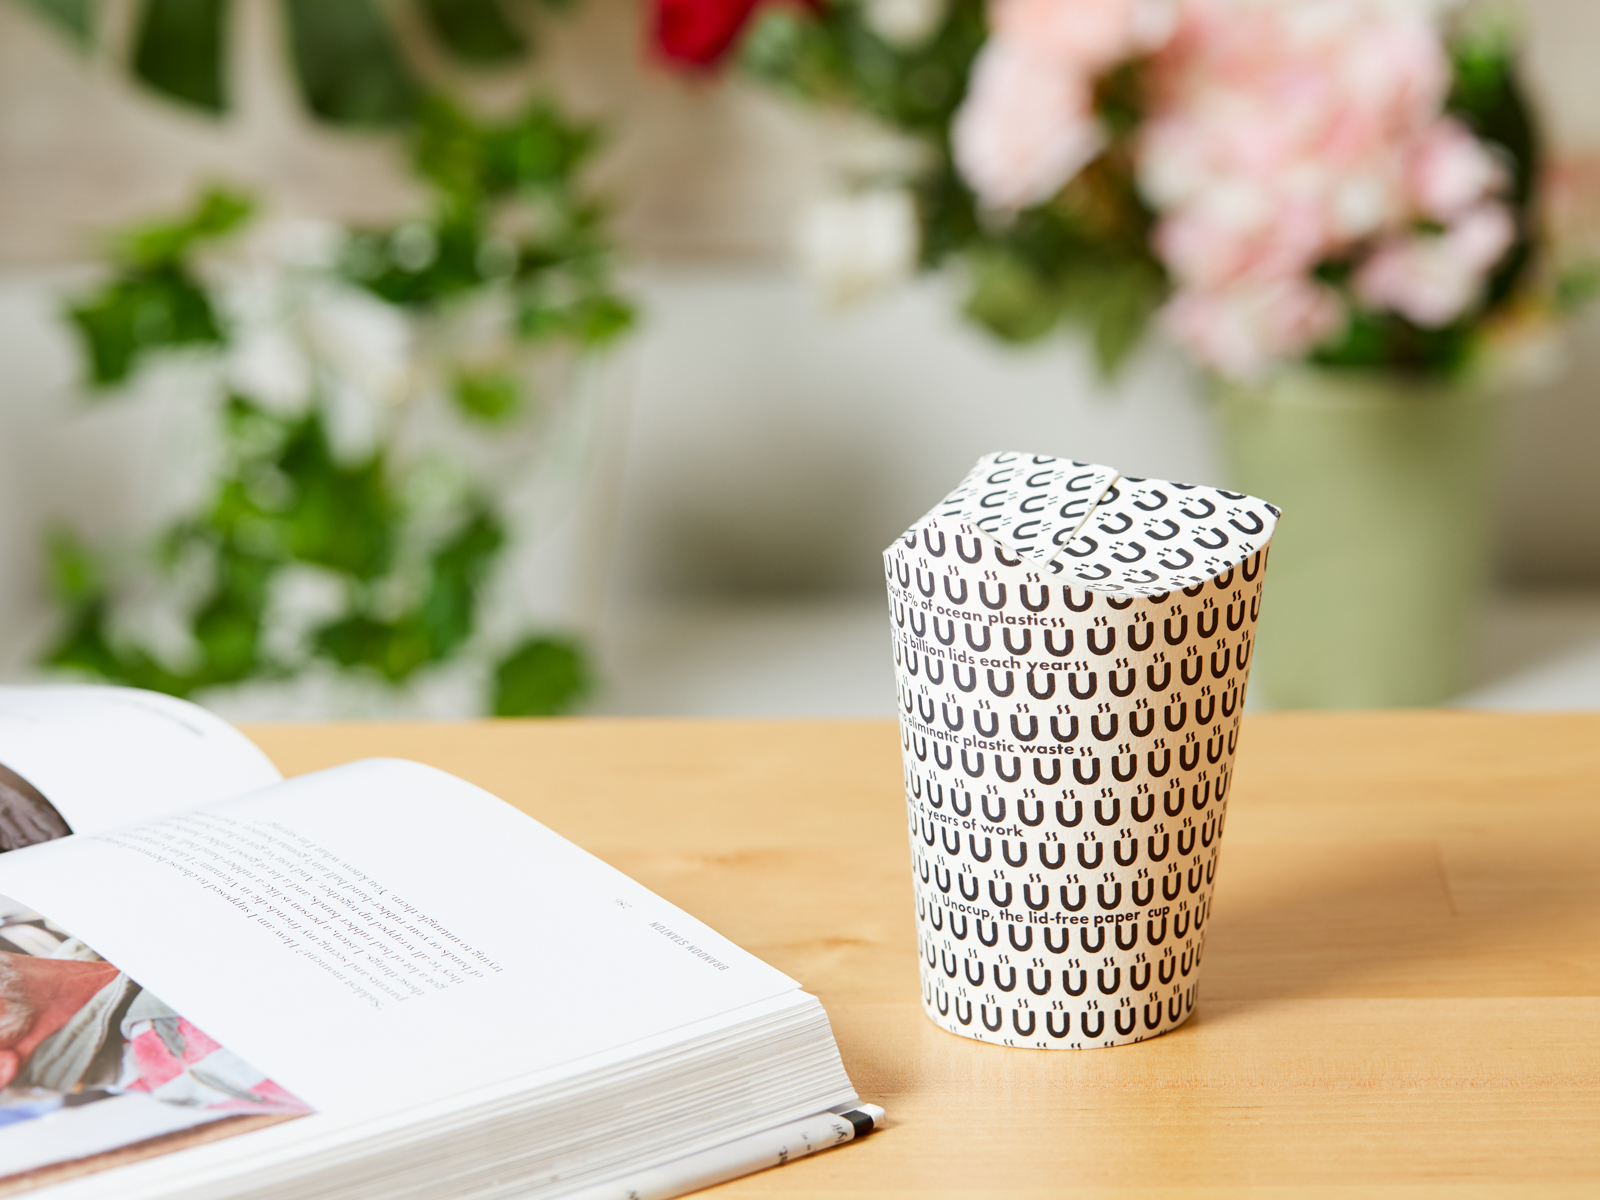 Unocup Paper Cup with No Plastic Lid